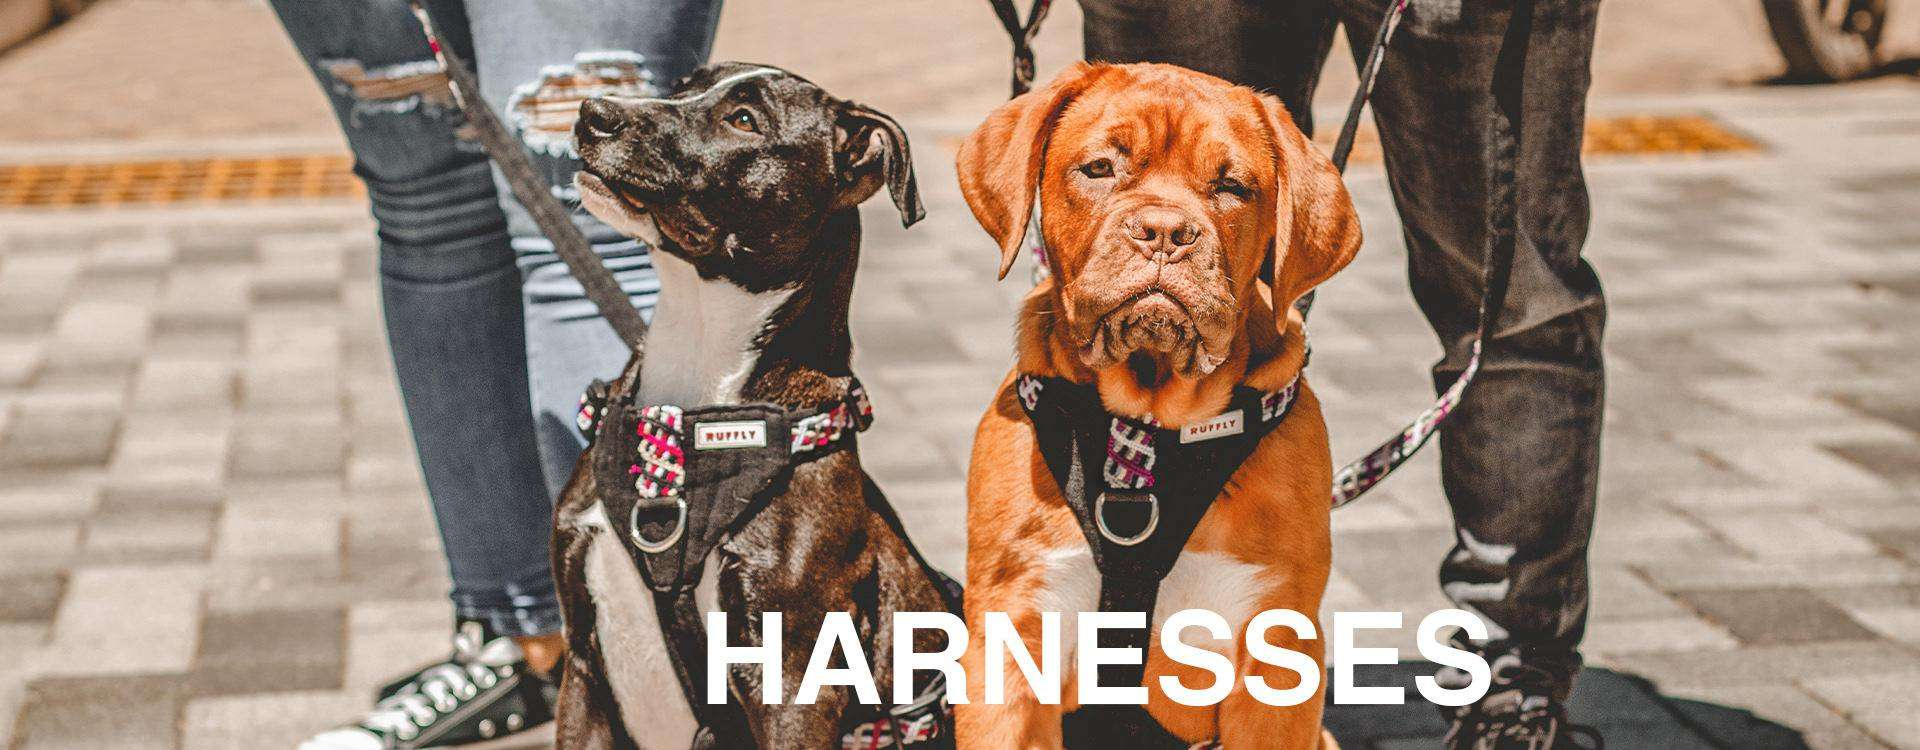 """Black dog looks upward and brown dog looks at camera while both dogs wear matching pink and purple ethically-made outdoor dog harnesses with overlaid text: """"HARNESSES"""""""